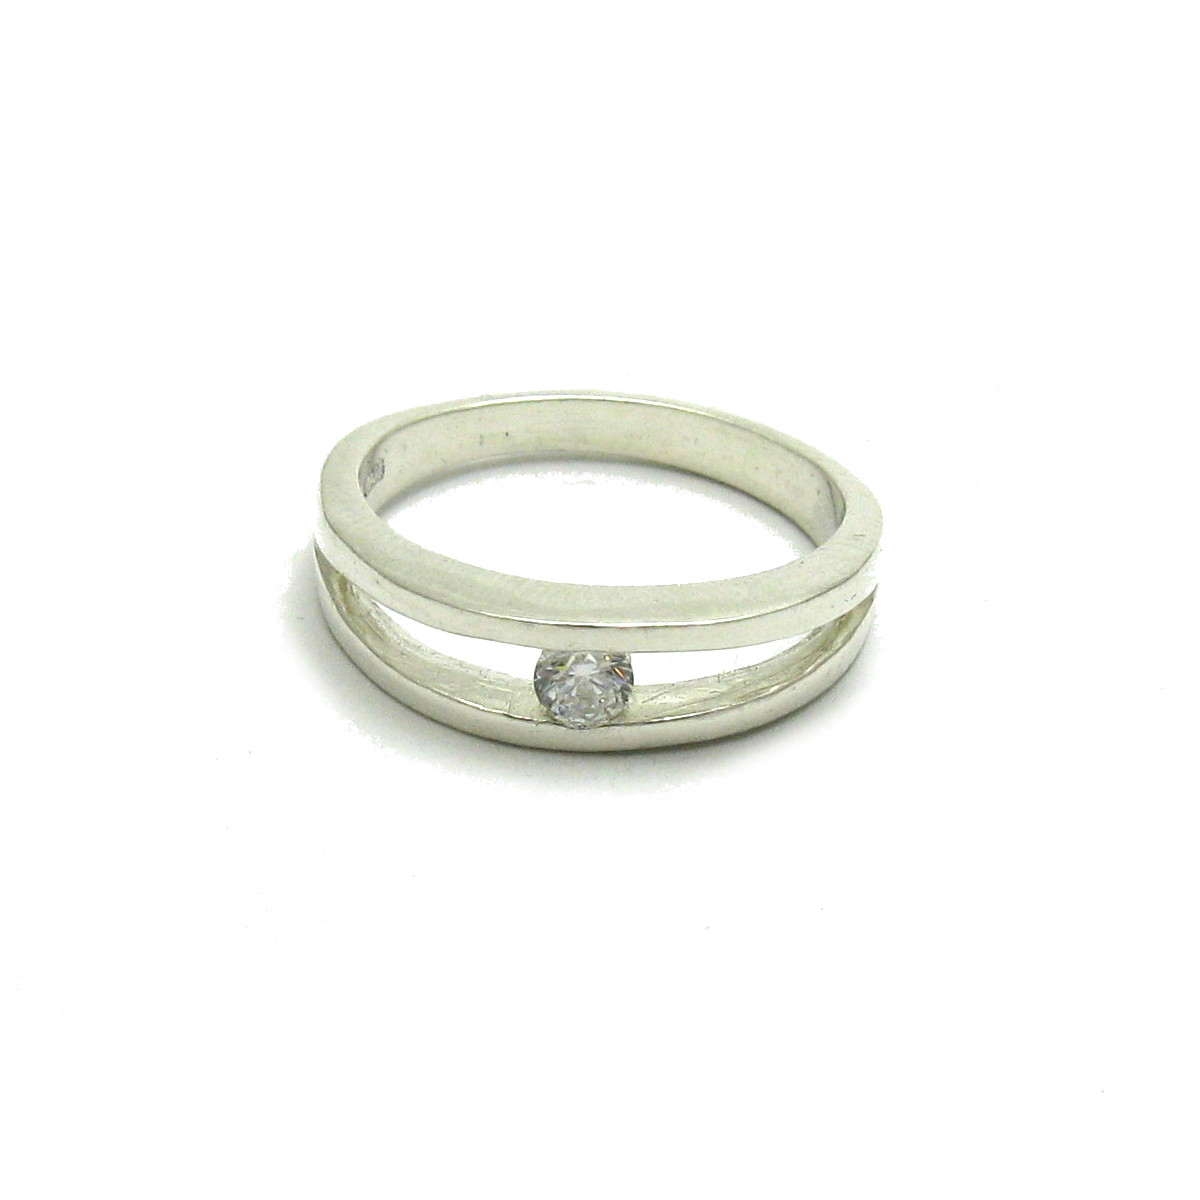 Silver ring - R000302